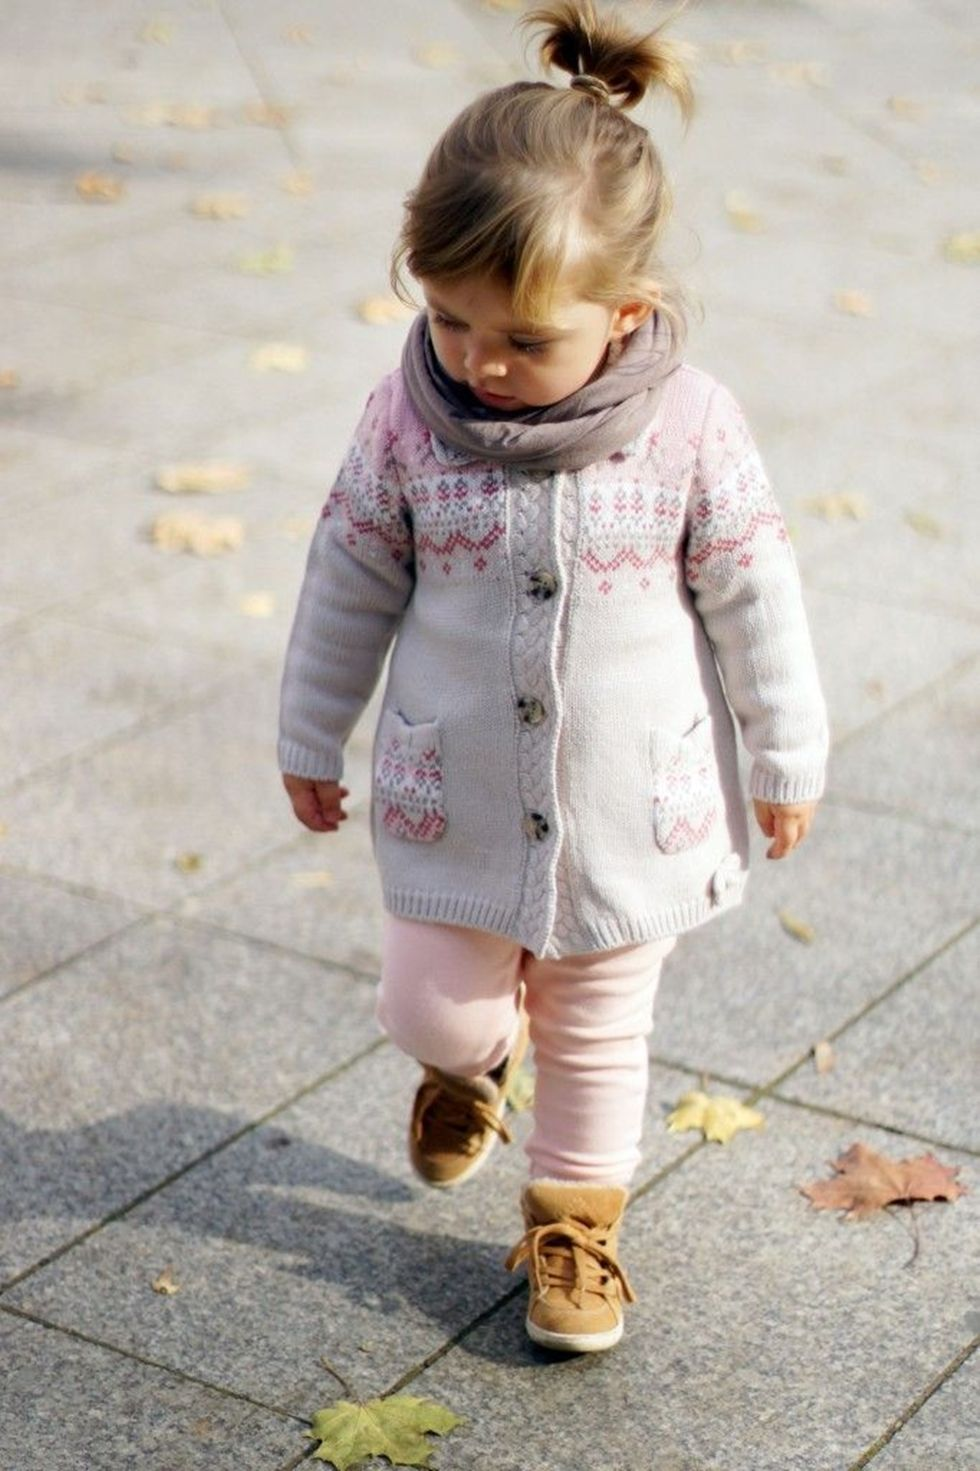 Adorable-Little-Girl-Winter-Outfits-Ideas-2014-2-4-years-old-15.jpg (980×1471)